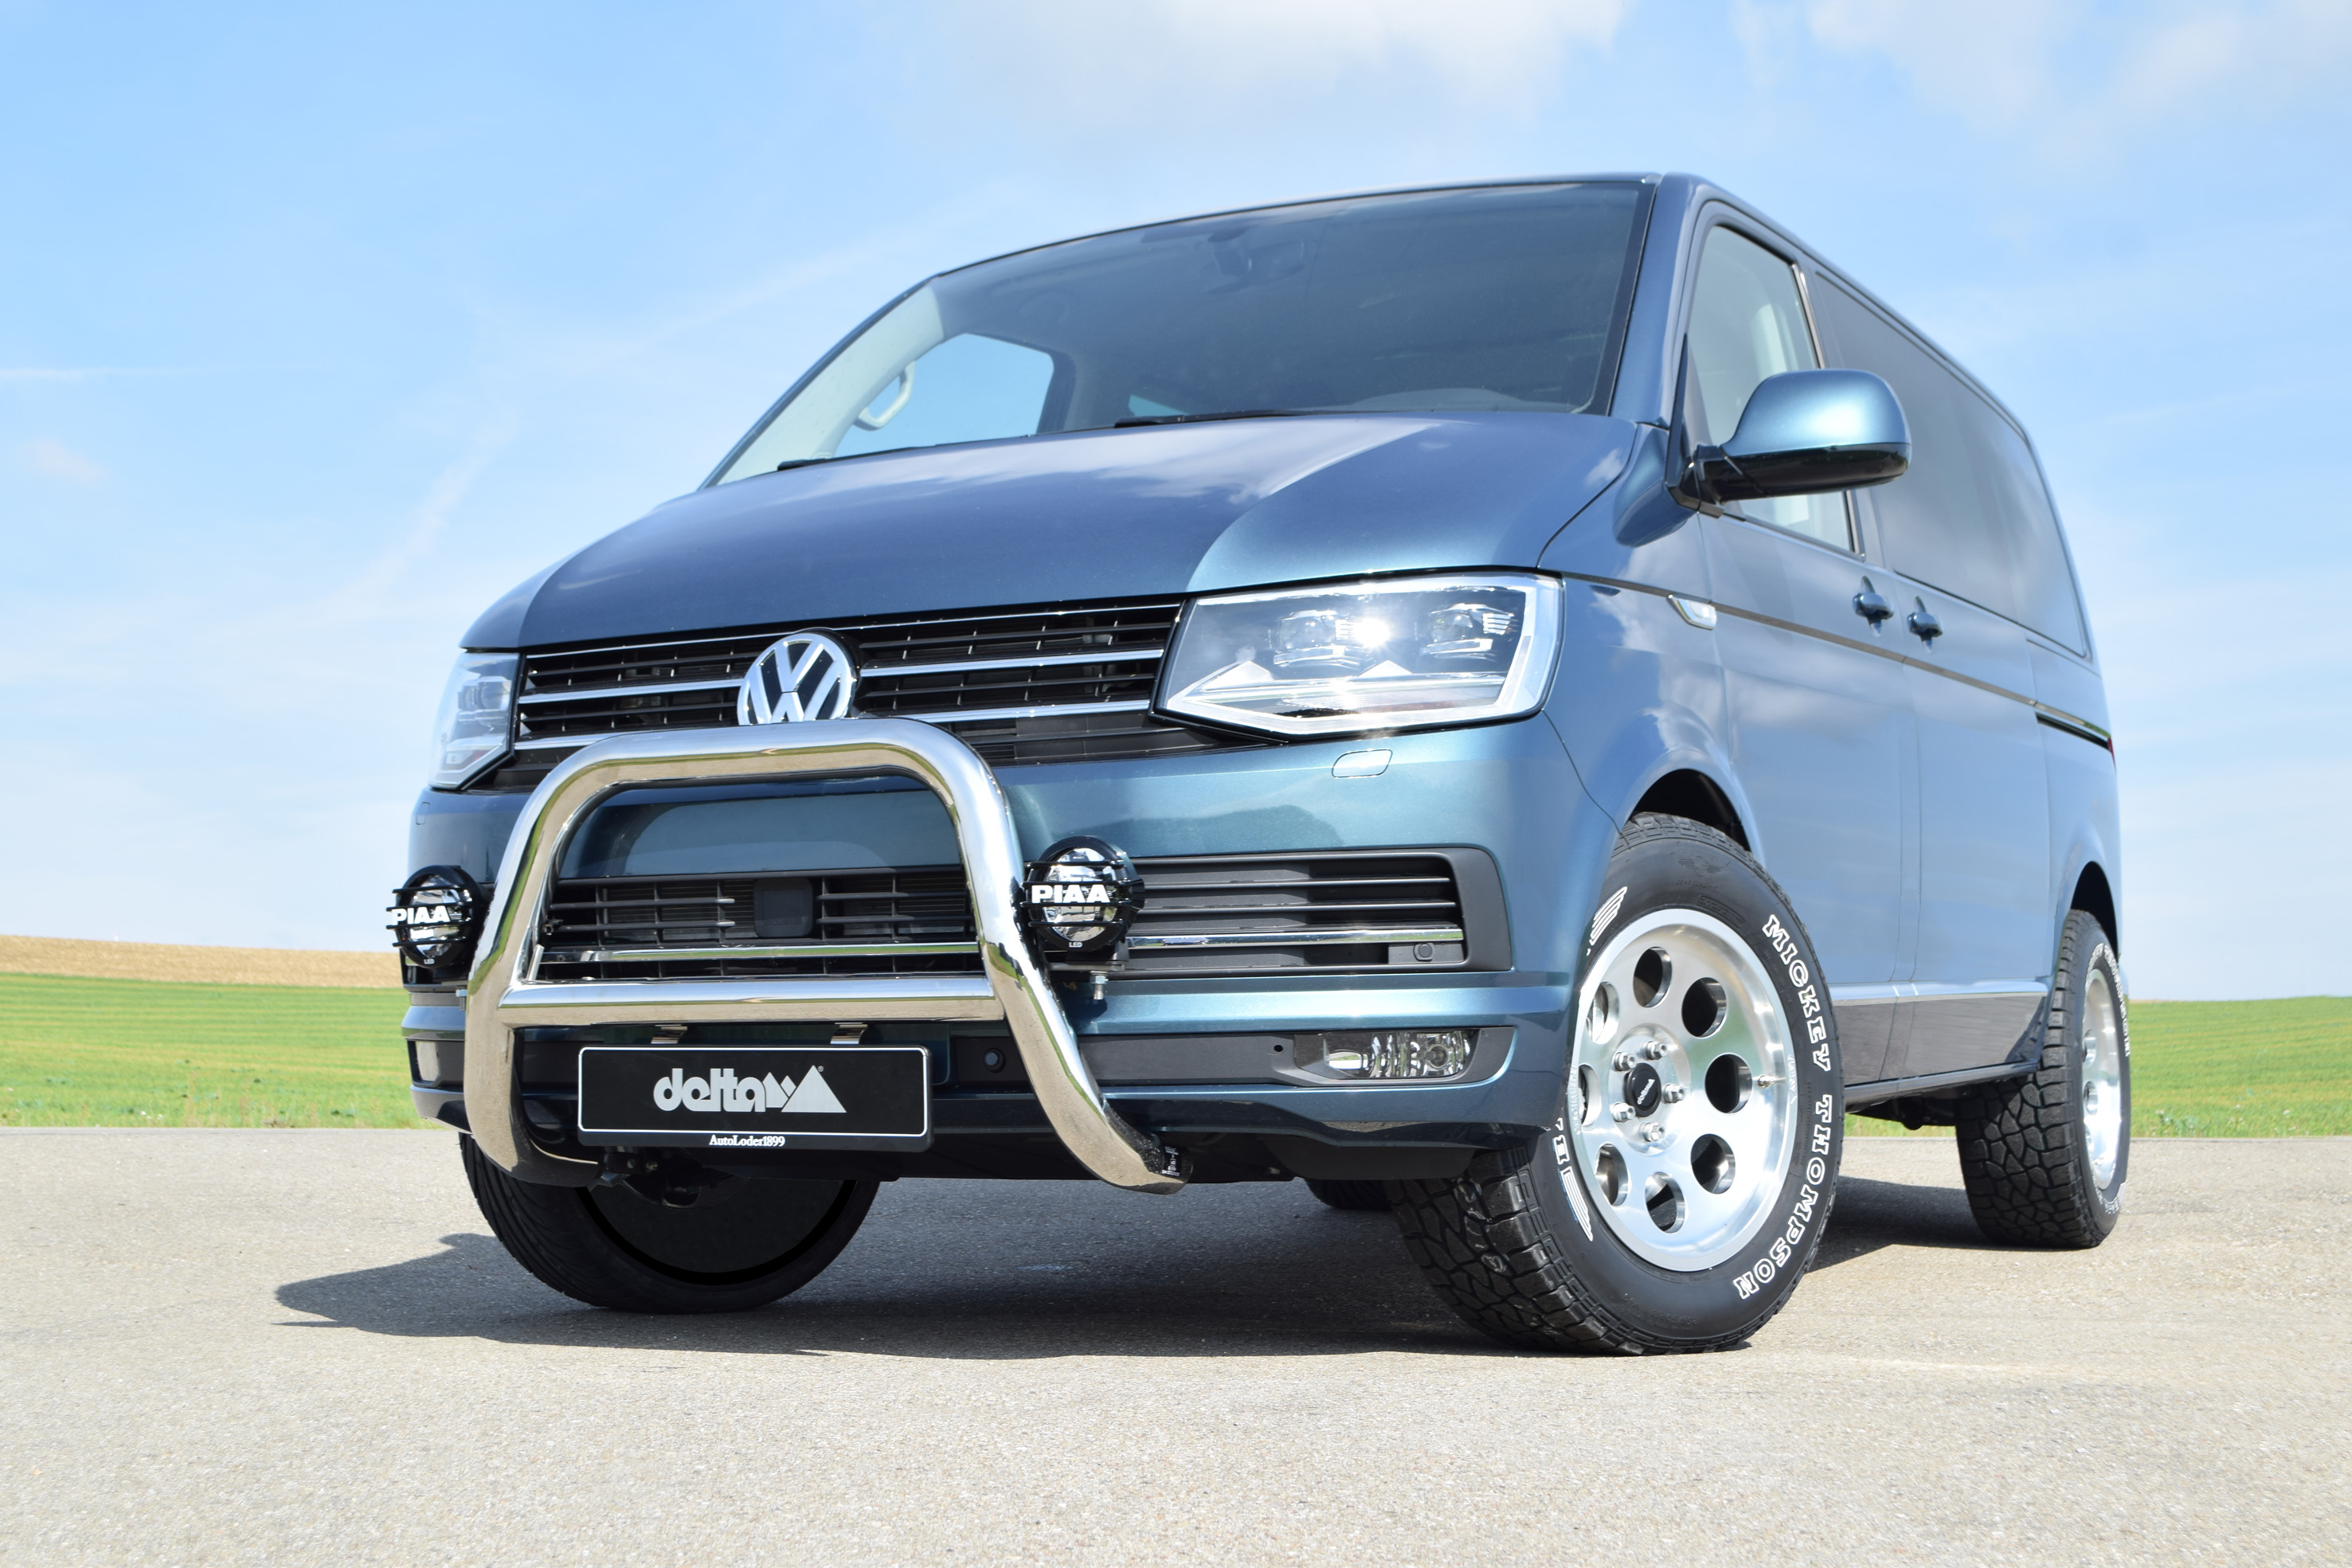 The VW Van Sixth Edition by Delta4x4